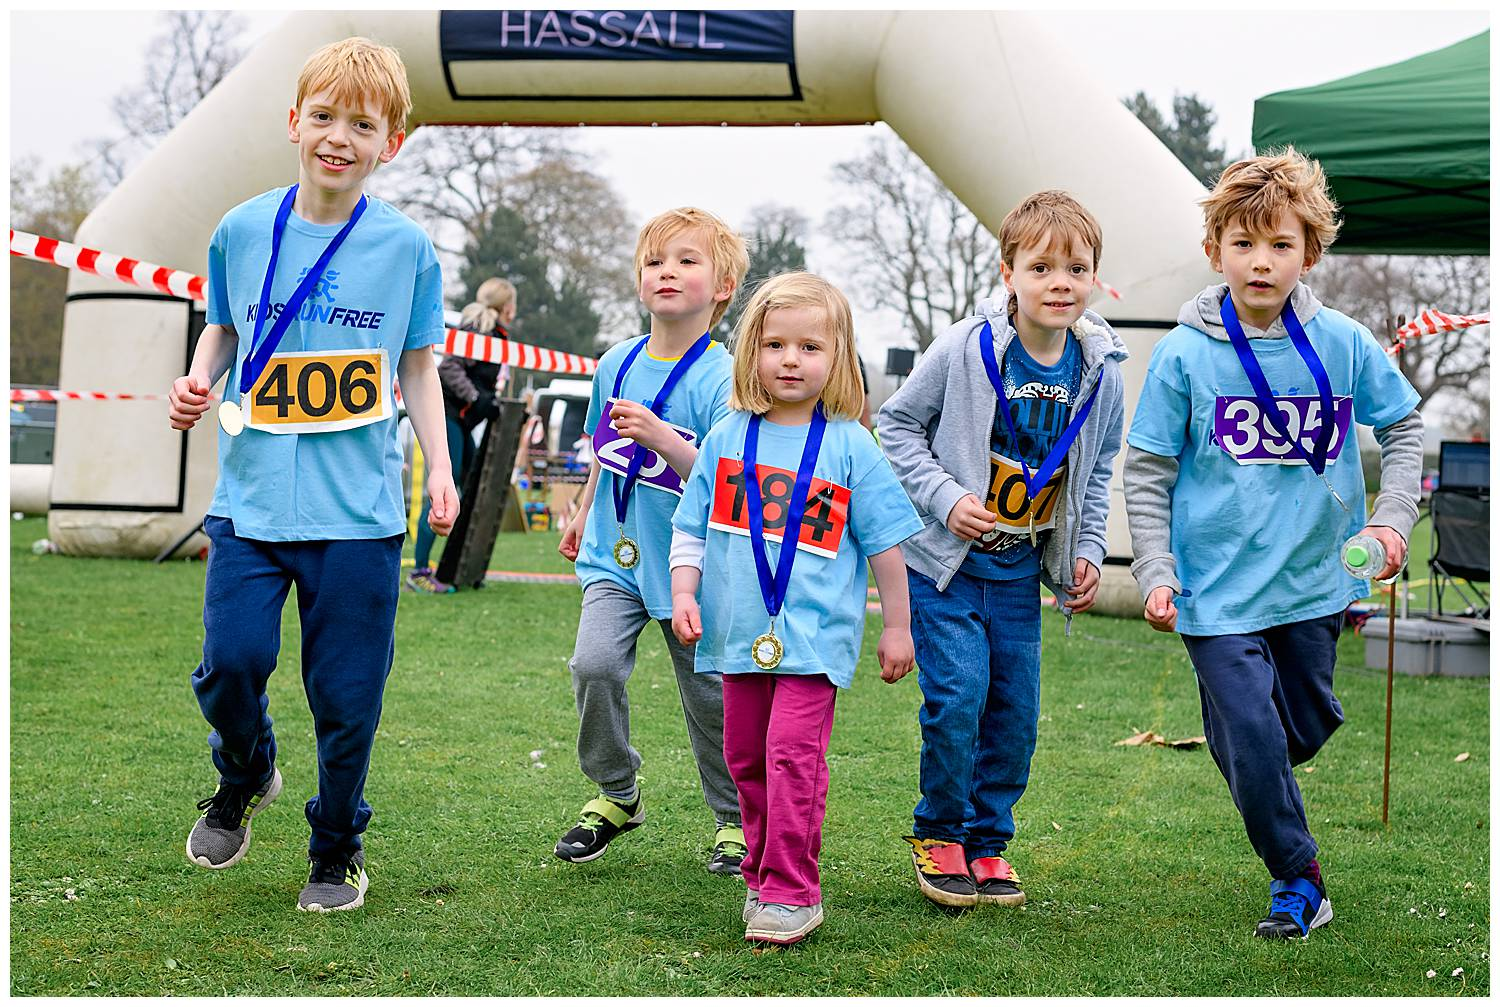 Alexandra Tandy Photography photo of children racing towards the camera with their medals